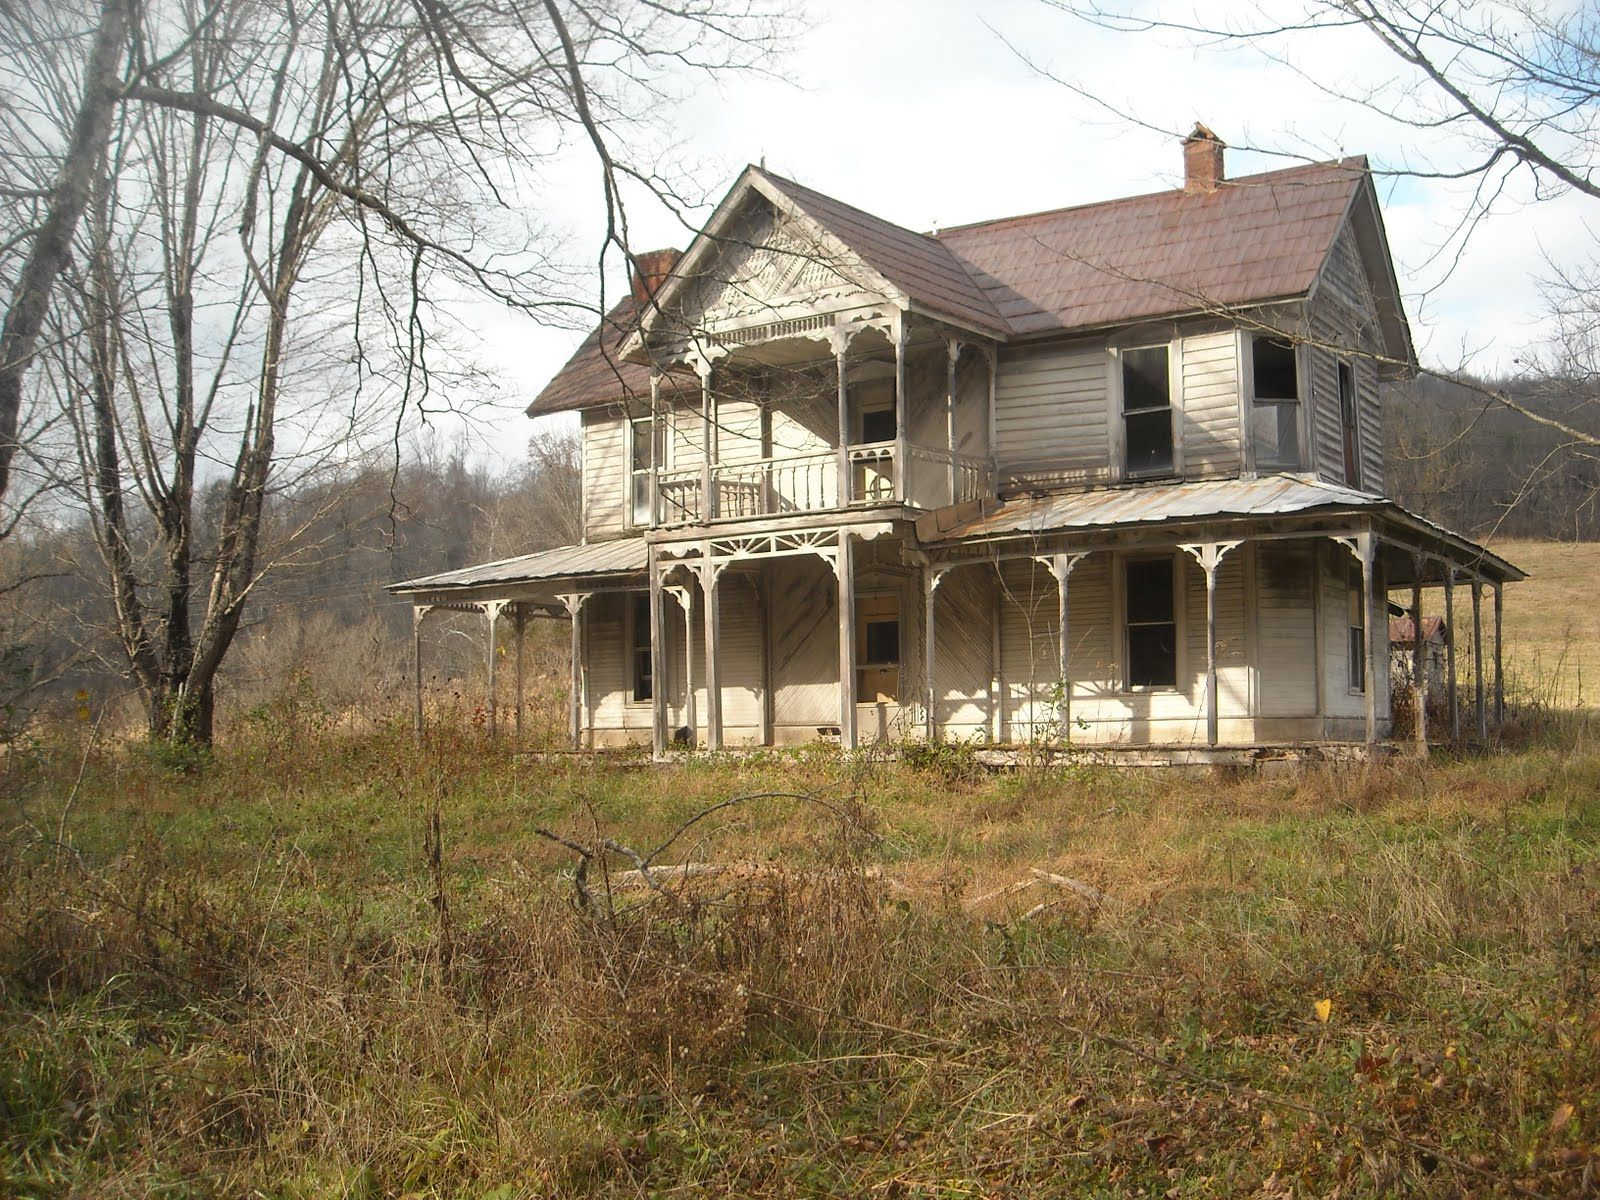 Monkey muck creepy house of the week linda 39 s board for Building a house in idaho